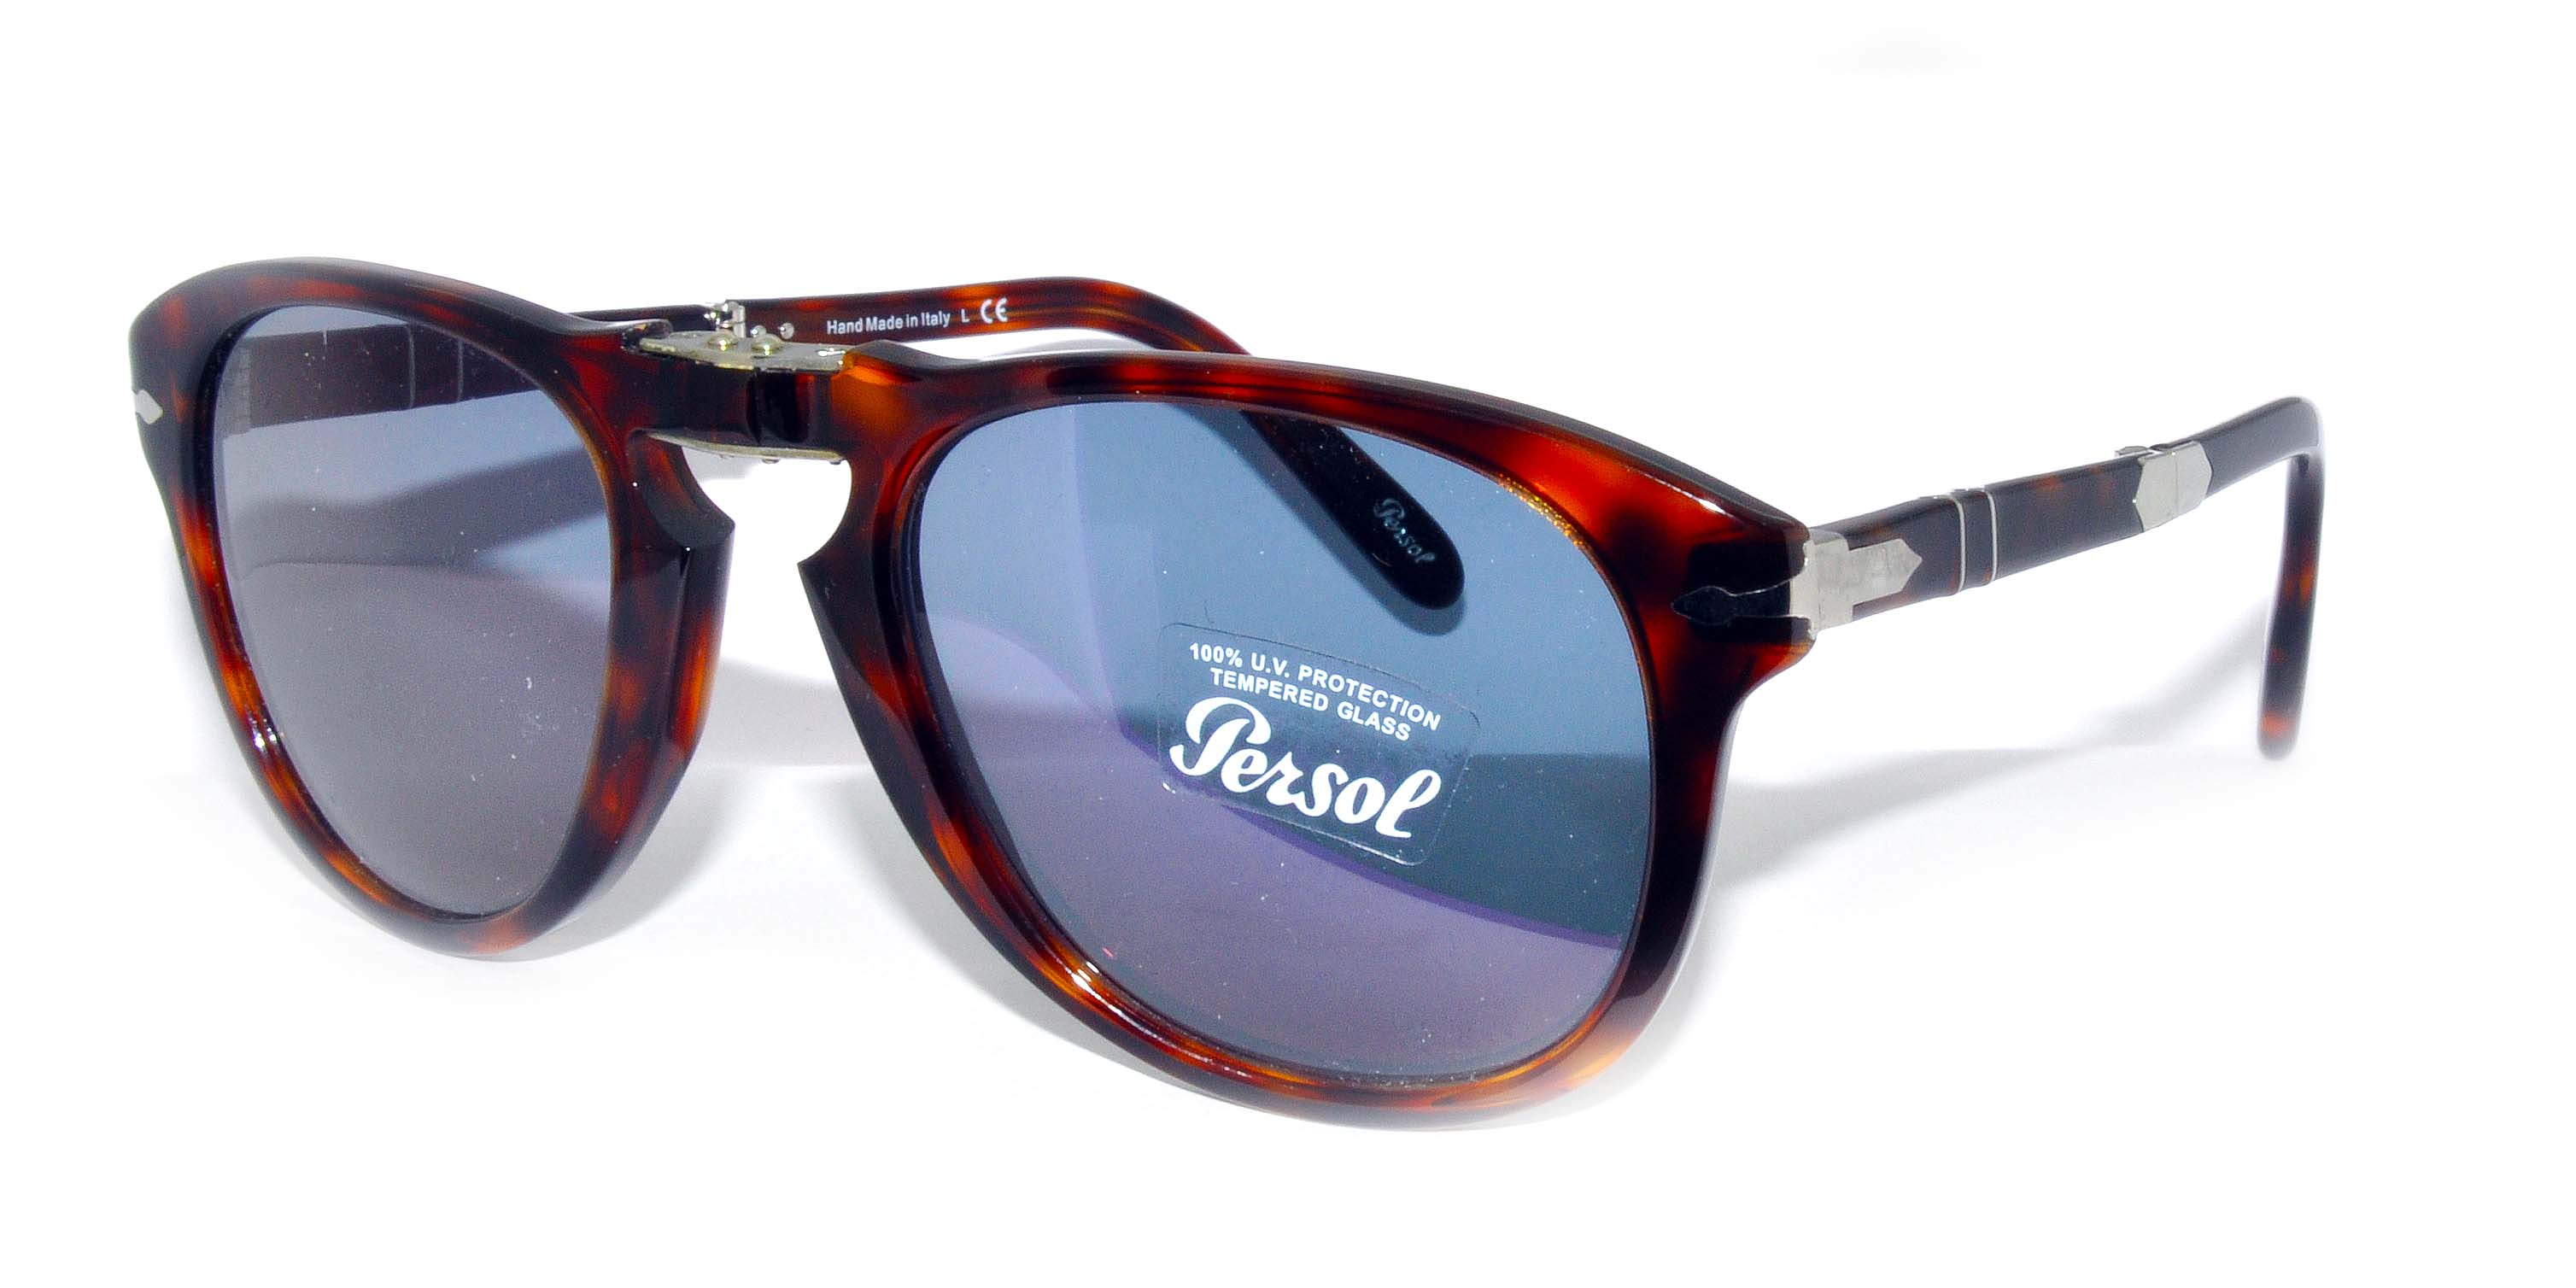 Persol Model: PO 0714 STEVE MCQUEEN, Colour Code: 24/56, Frame Colour: DARK HAVANA